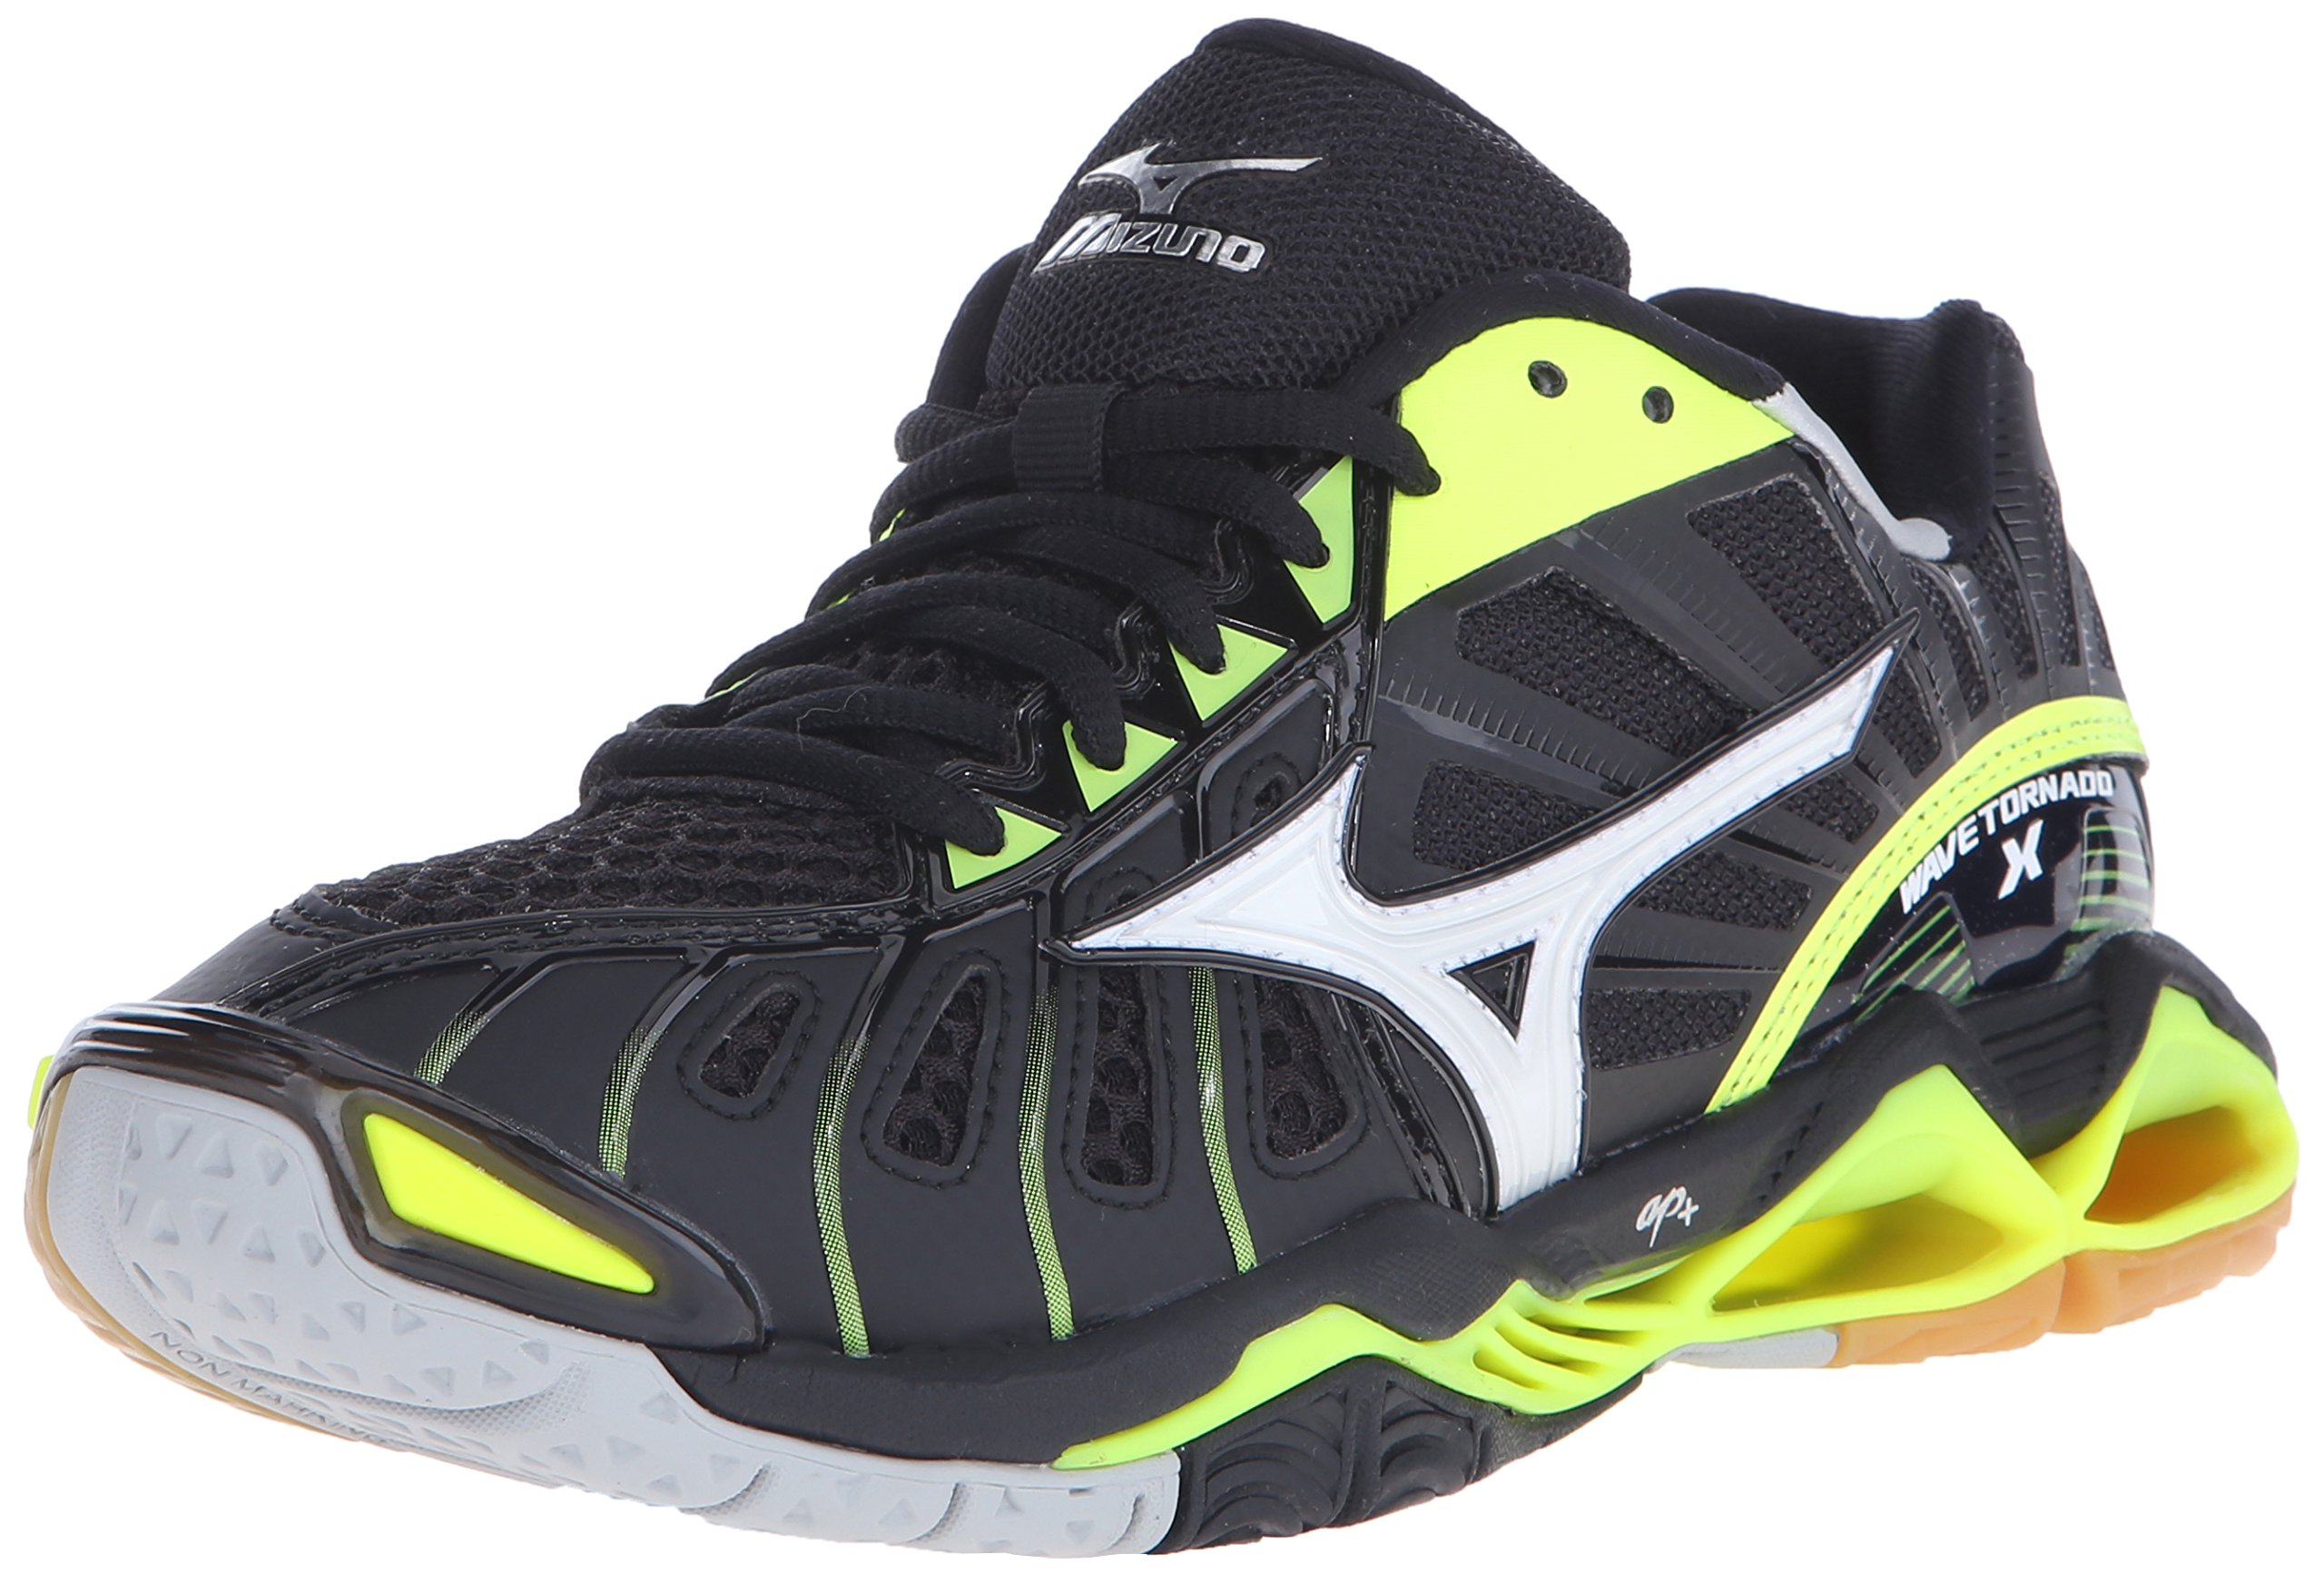 Mizuno Women's Wave Tornado x-w Volleyball Shoe, Black/Neon Yellow, 7.5 B US